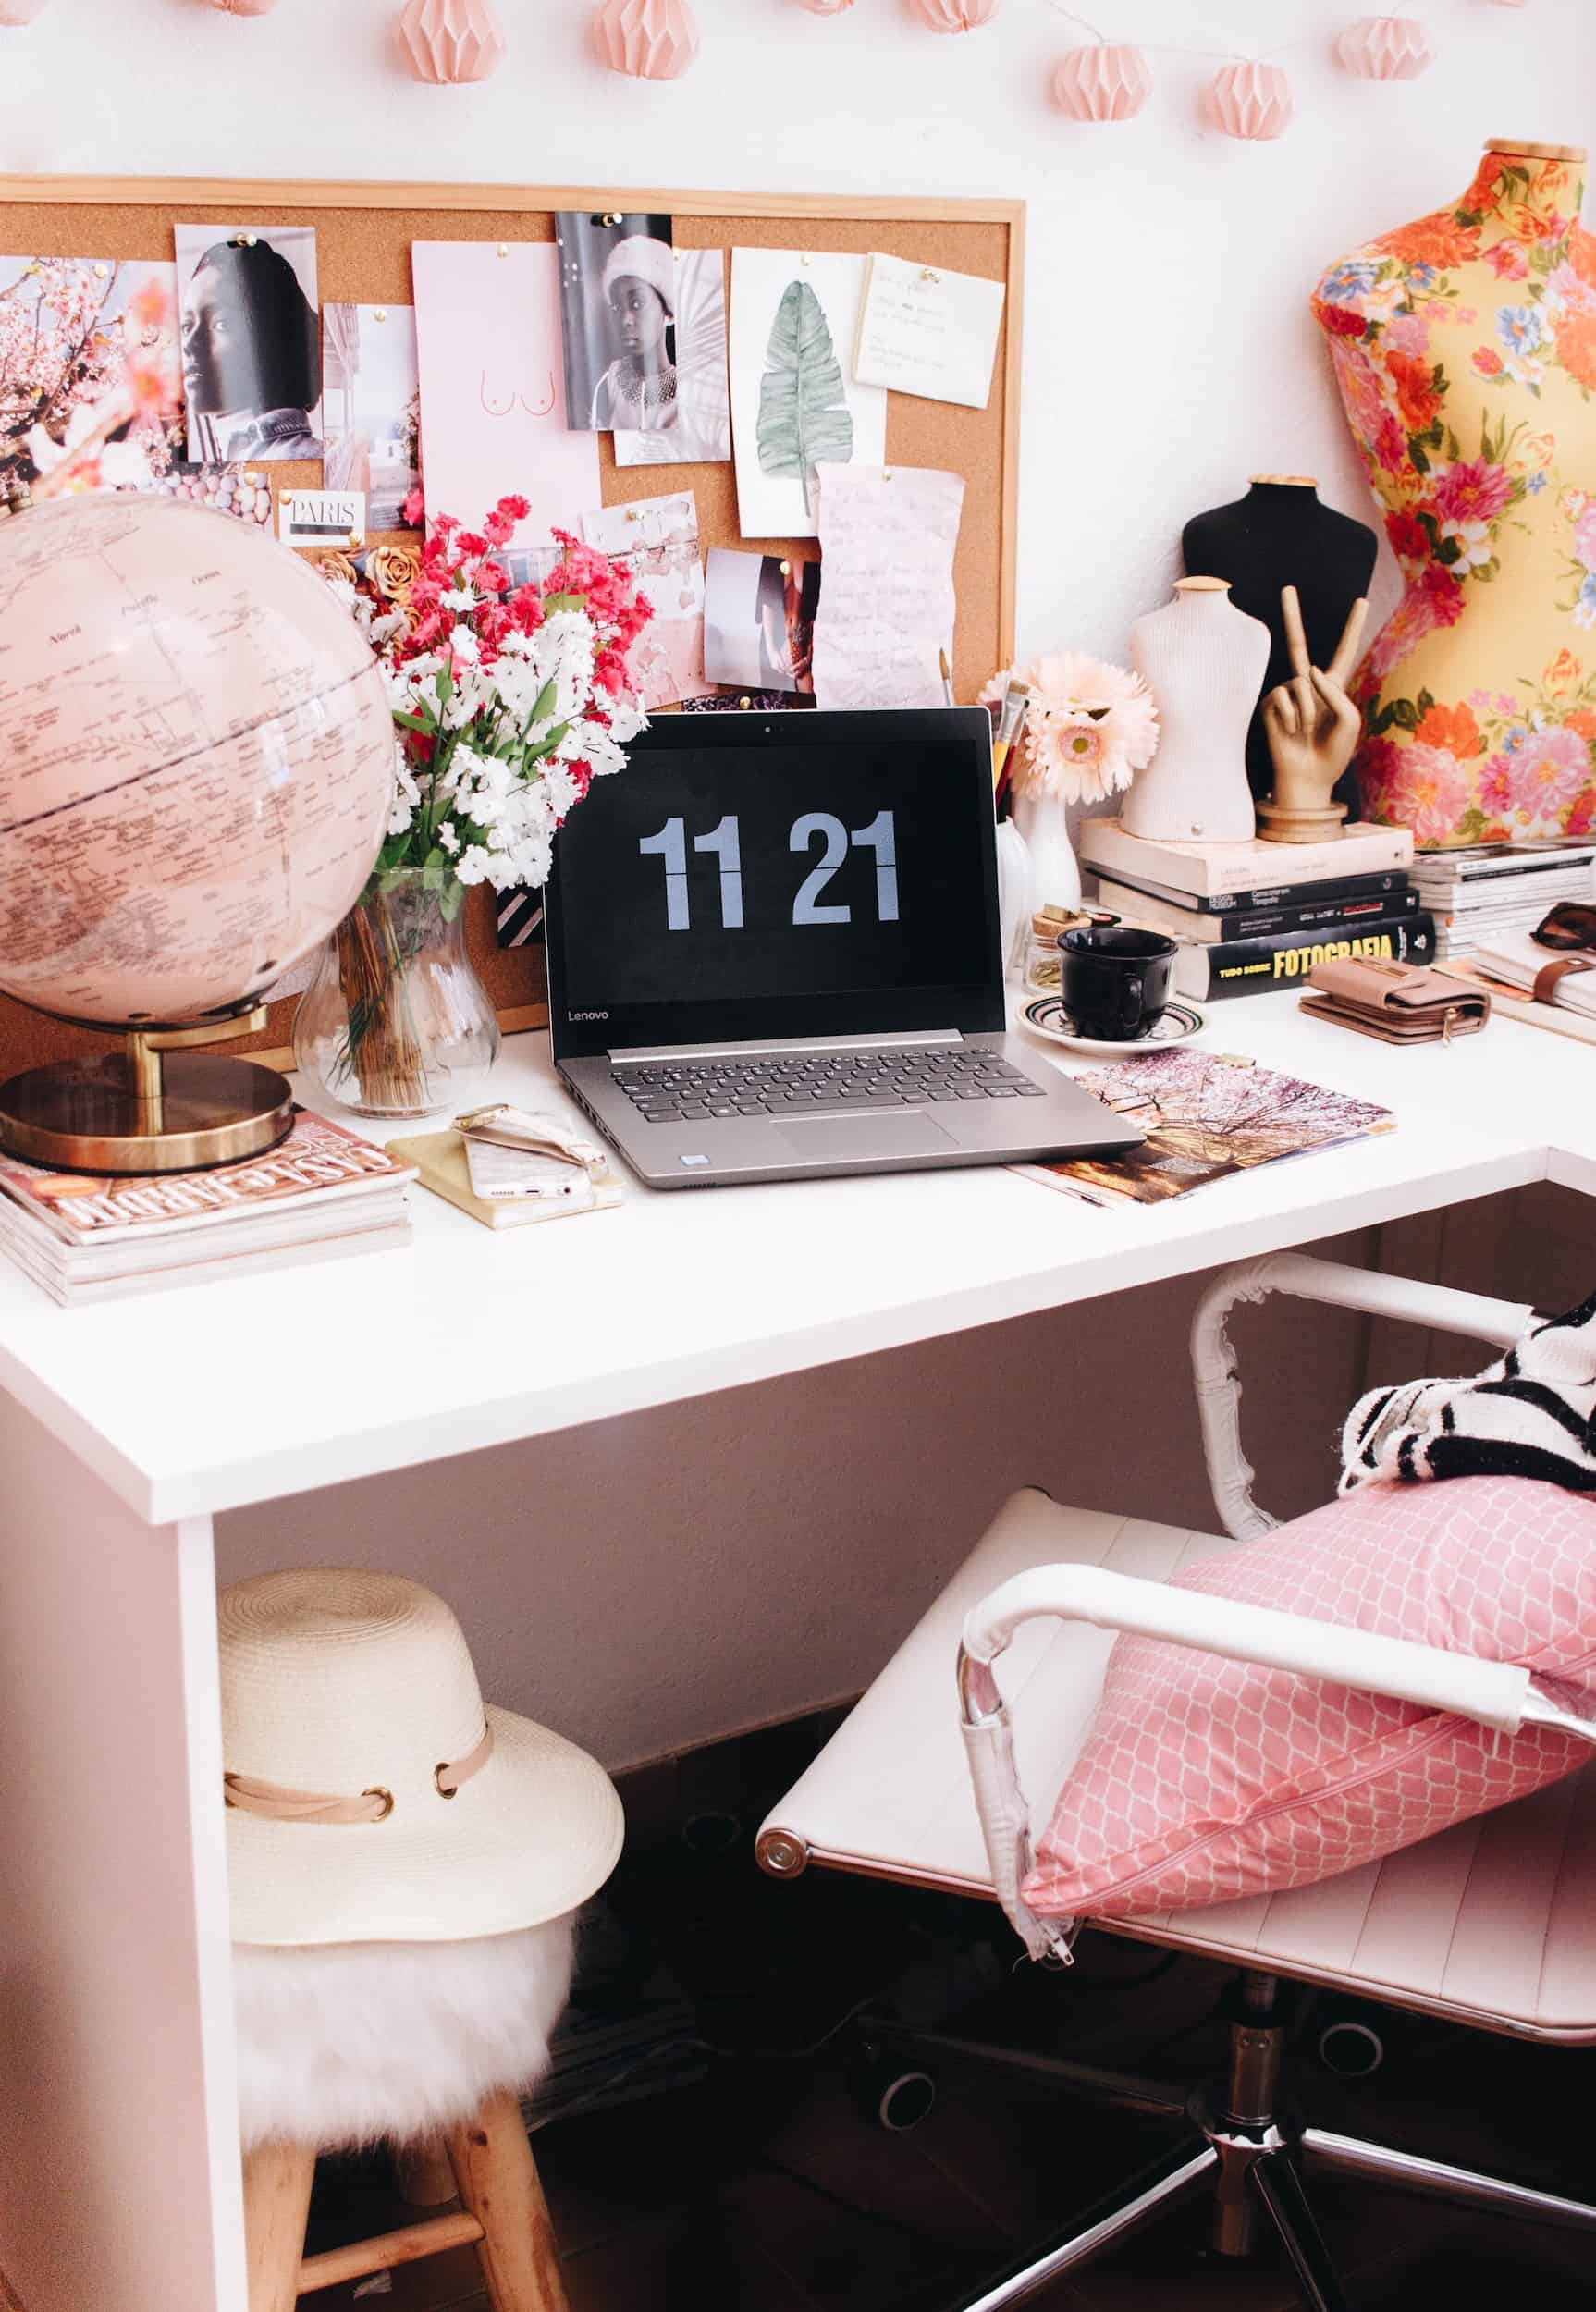 6 Ways to Add 'Wow' to Your Work Desk For Less than $30